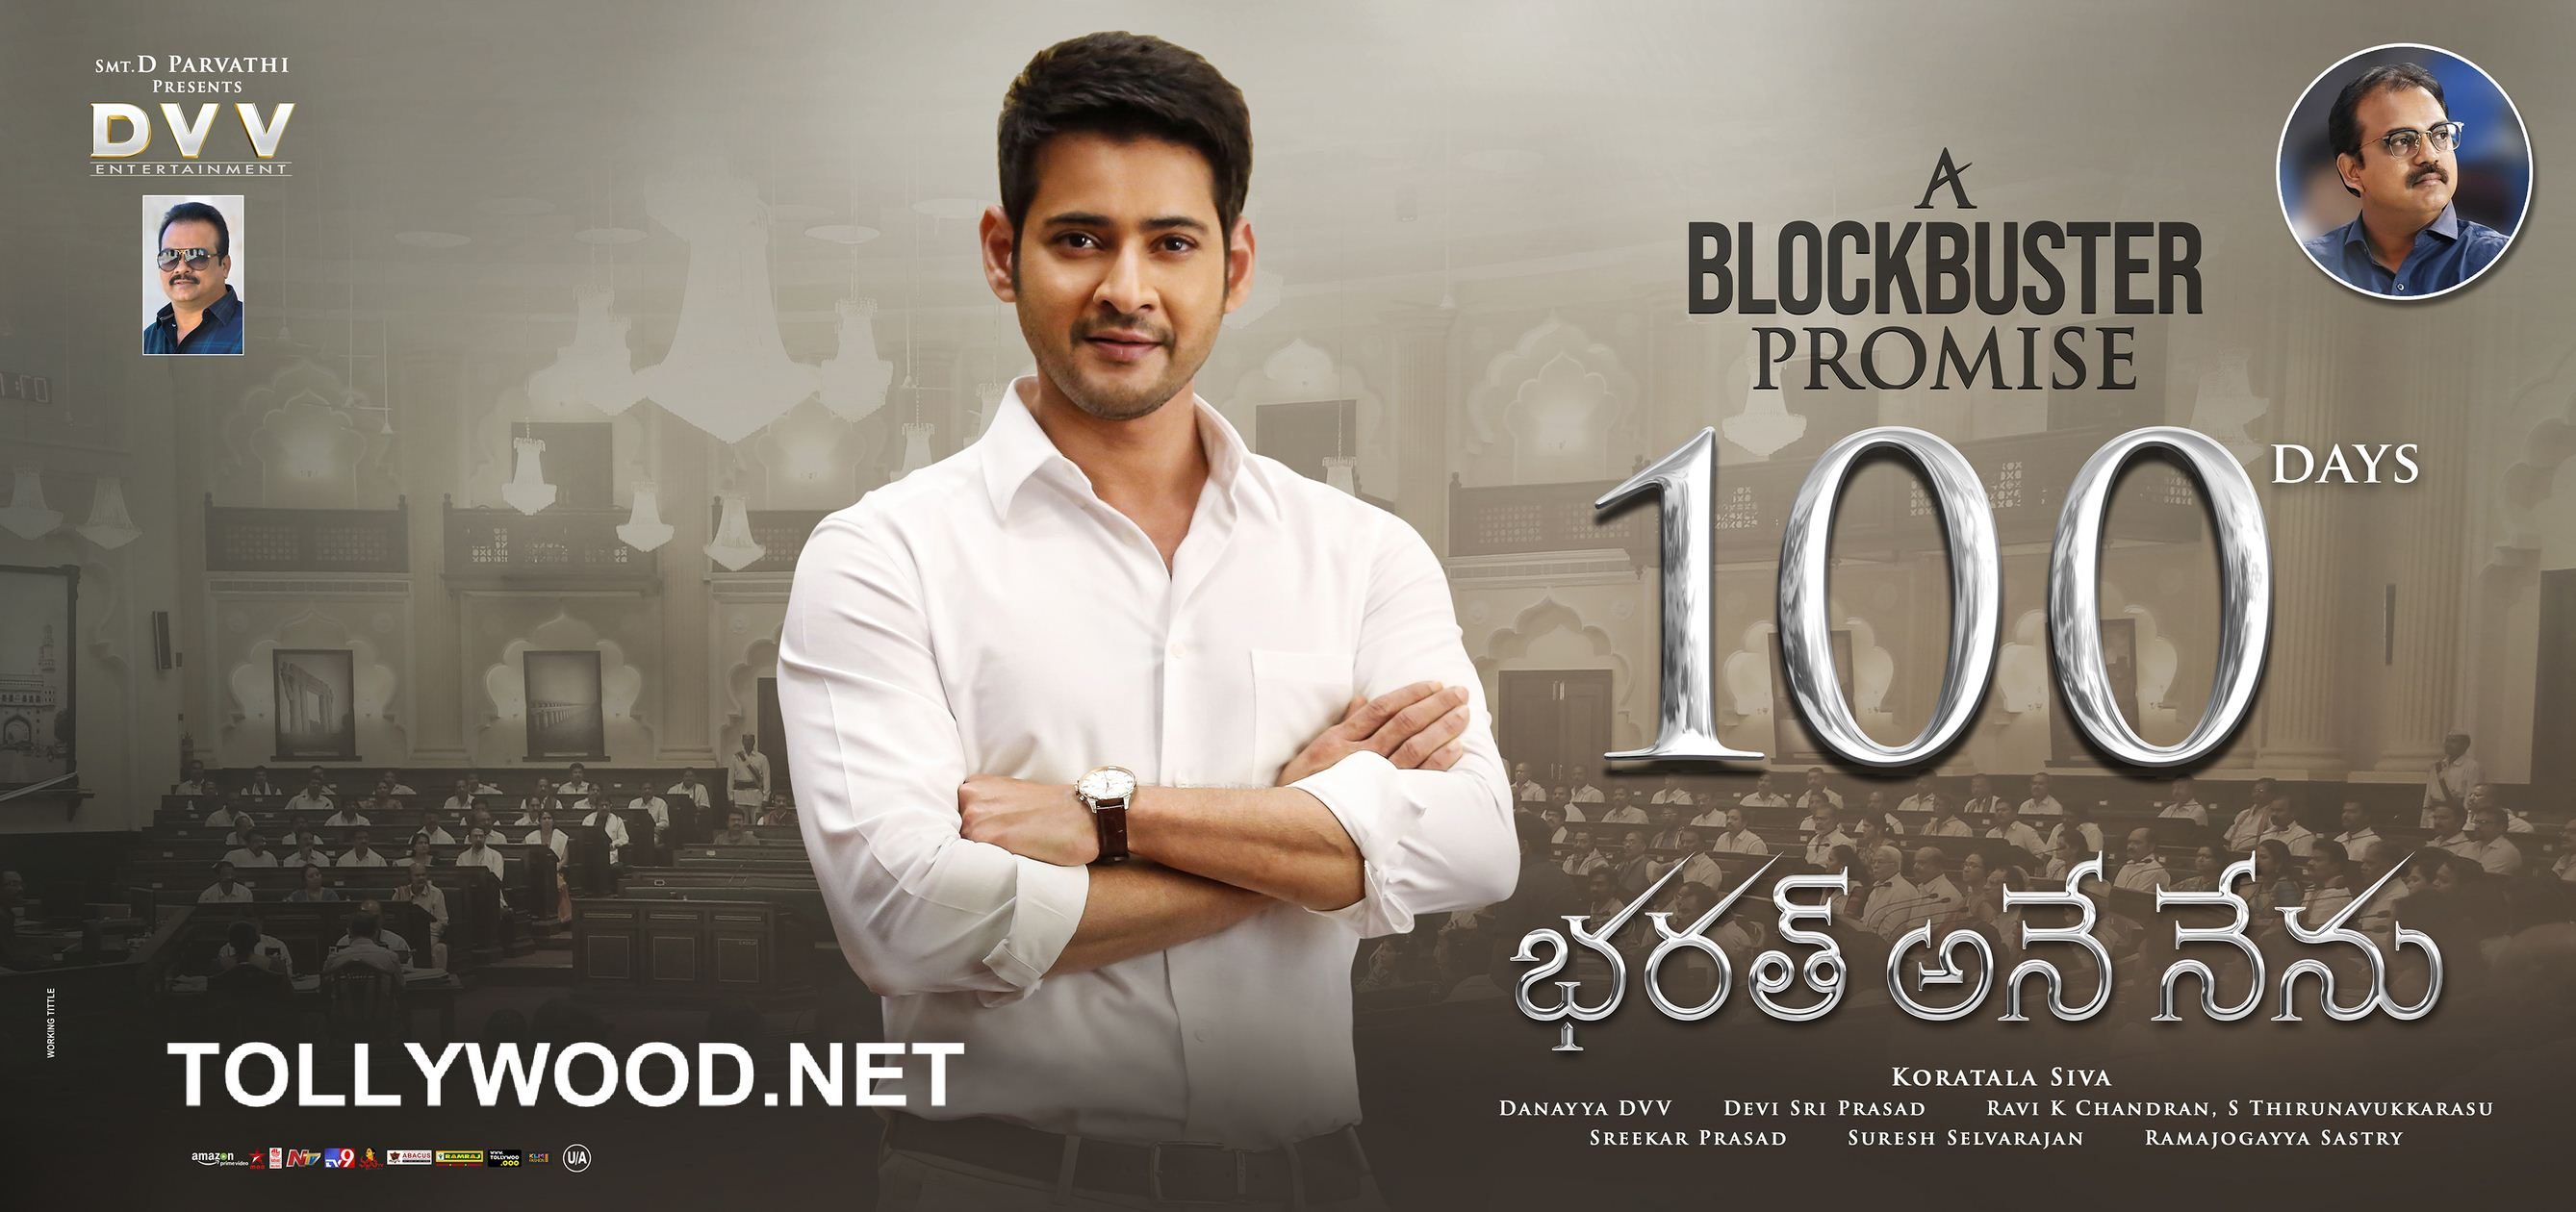 Bharat Ane Nenu Movie 100 Days Posters